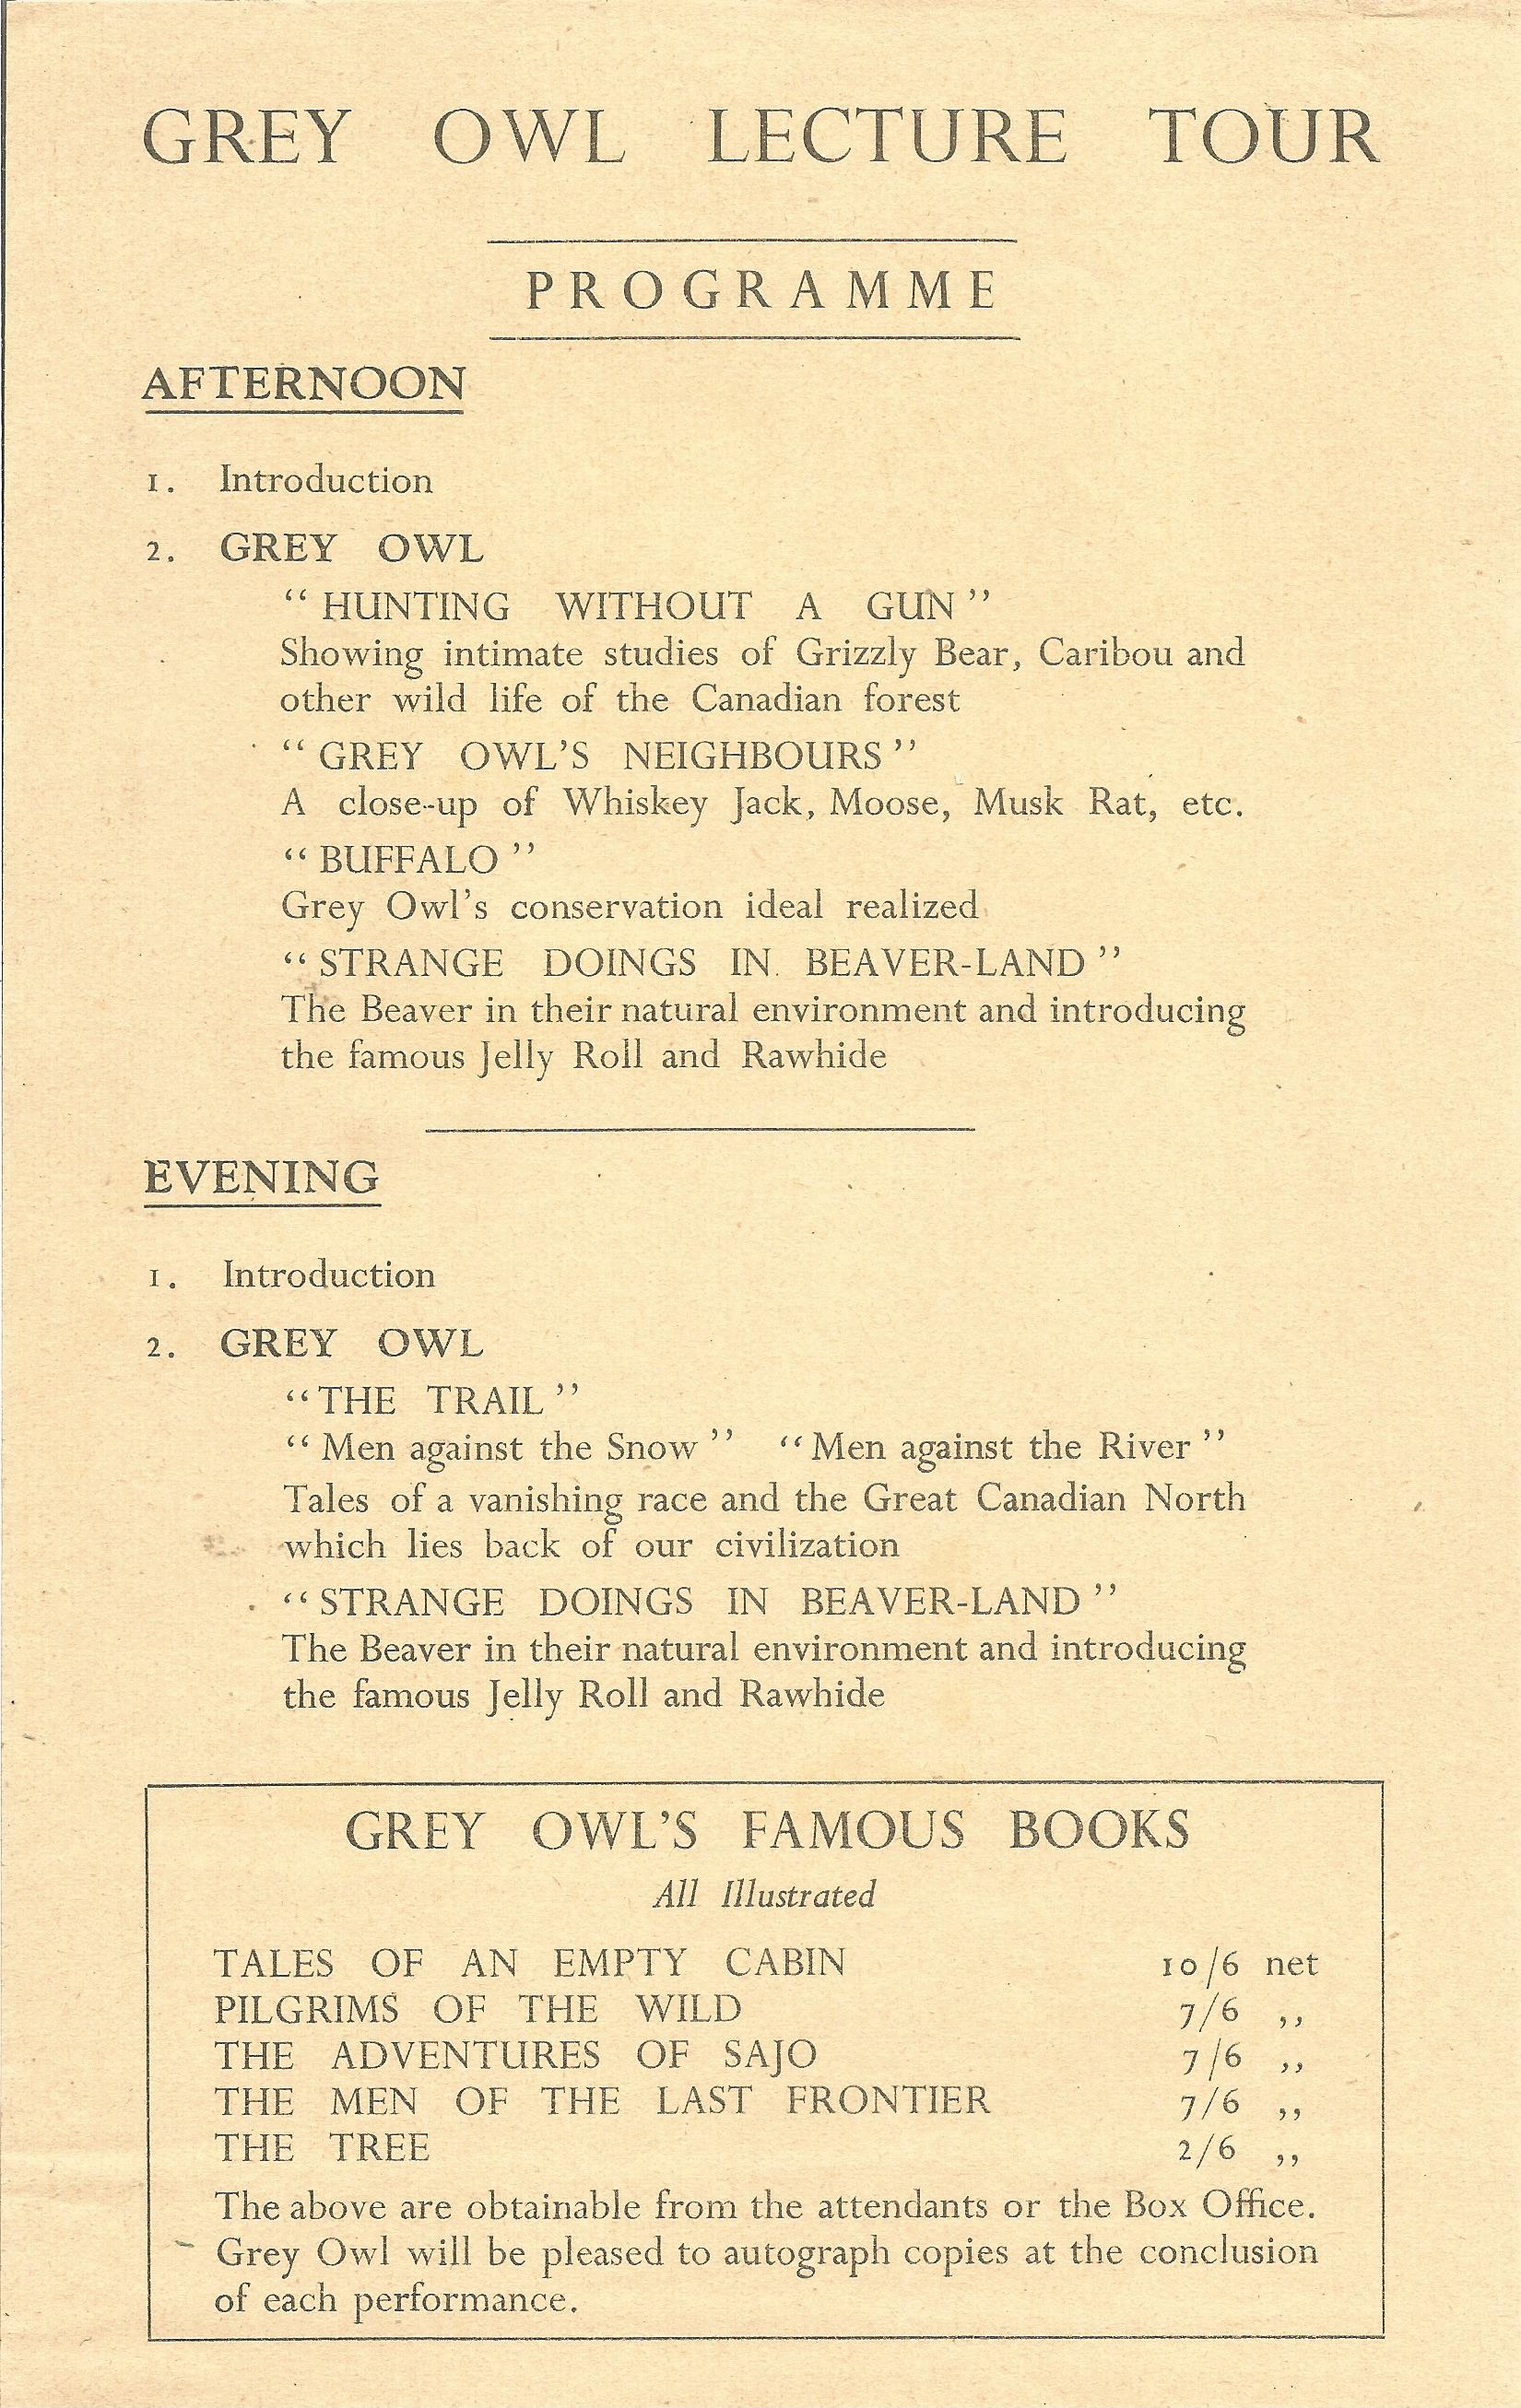 Hardback Book A Book of Grey Owl by E. E. Reynolds 1938 First Edition plus Souvenir Grey Owl Booklet - Image 7 of 7